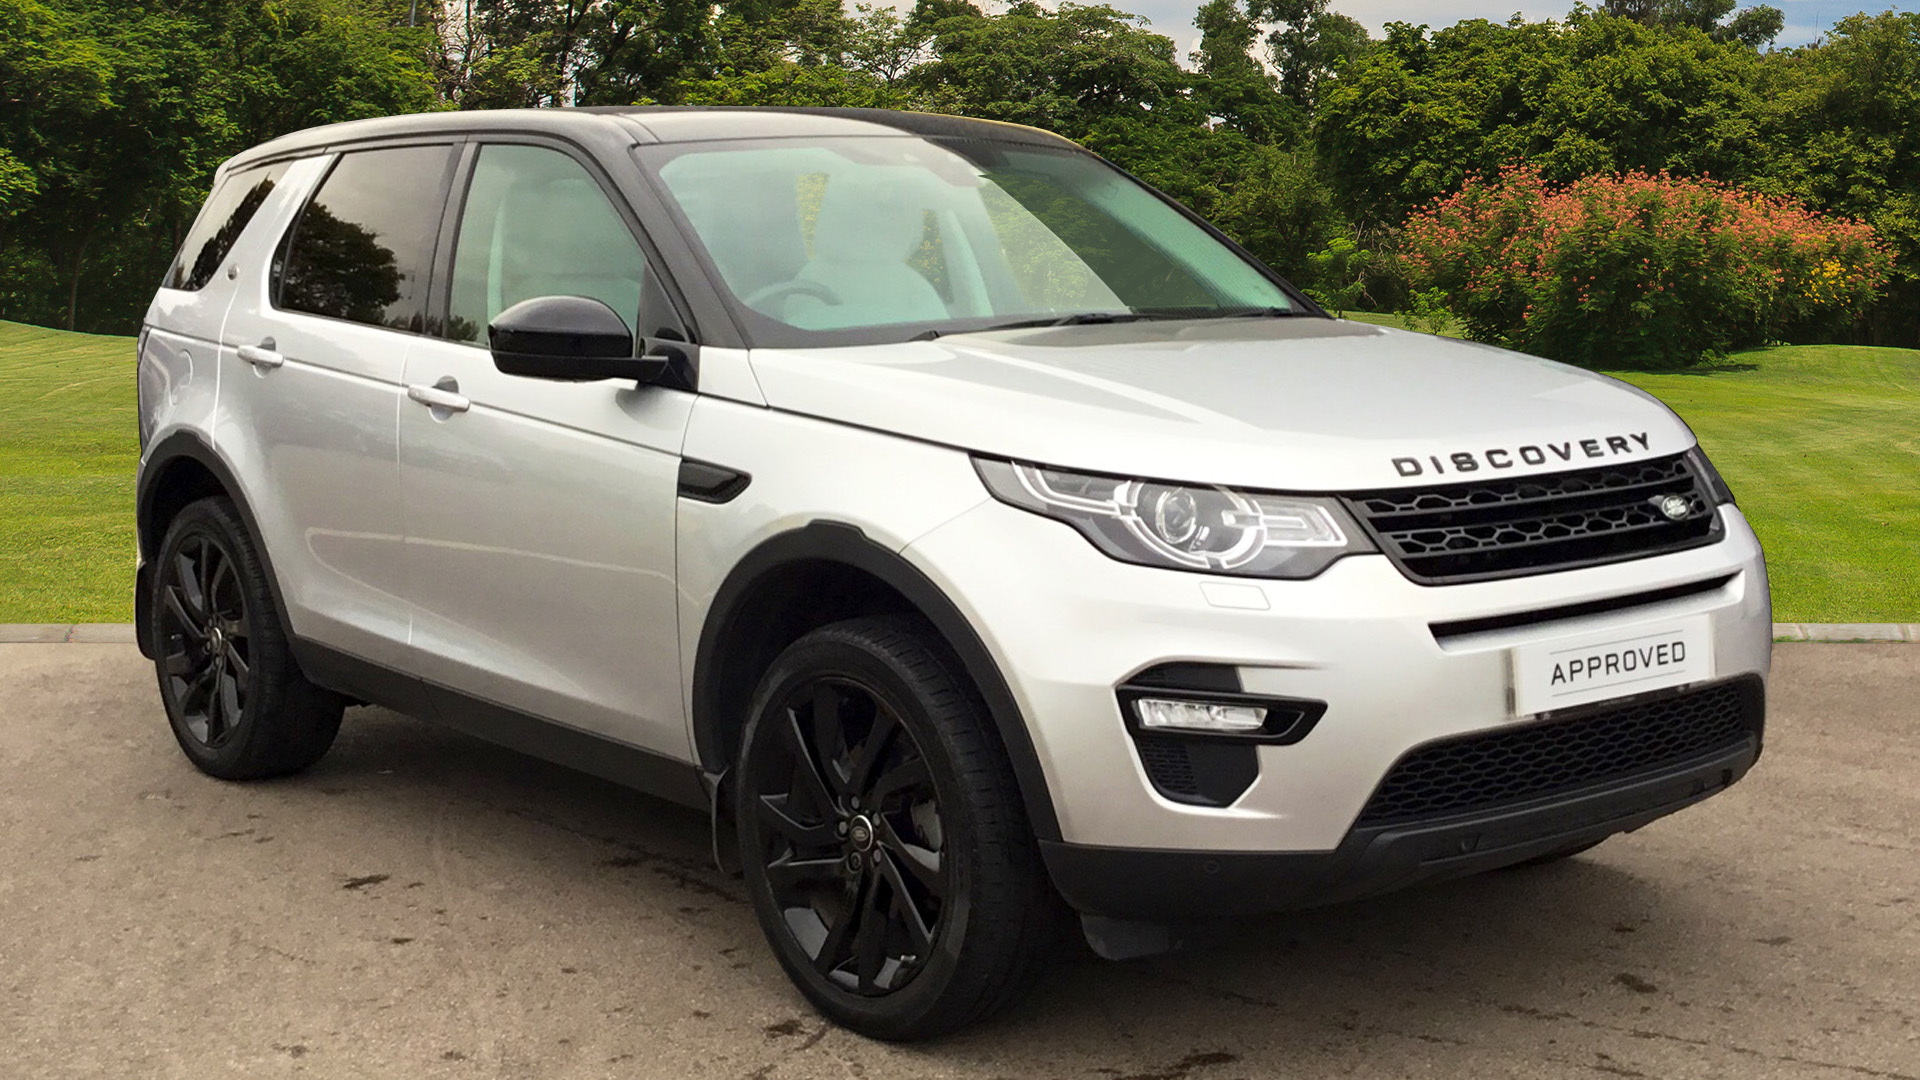 sale uk cars facelift classifieds just xs used in driver land sport reg rover discovery serviced lady sd pistonheads for model landrover